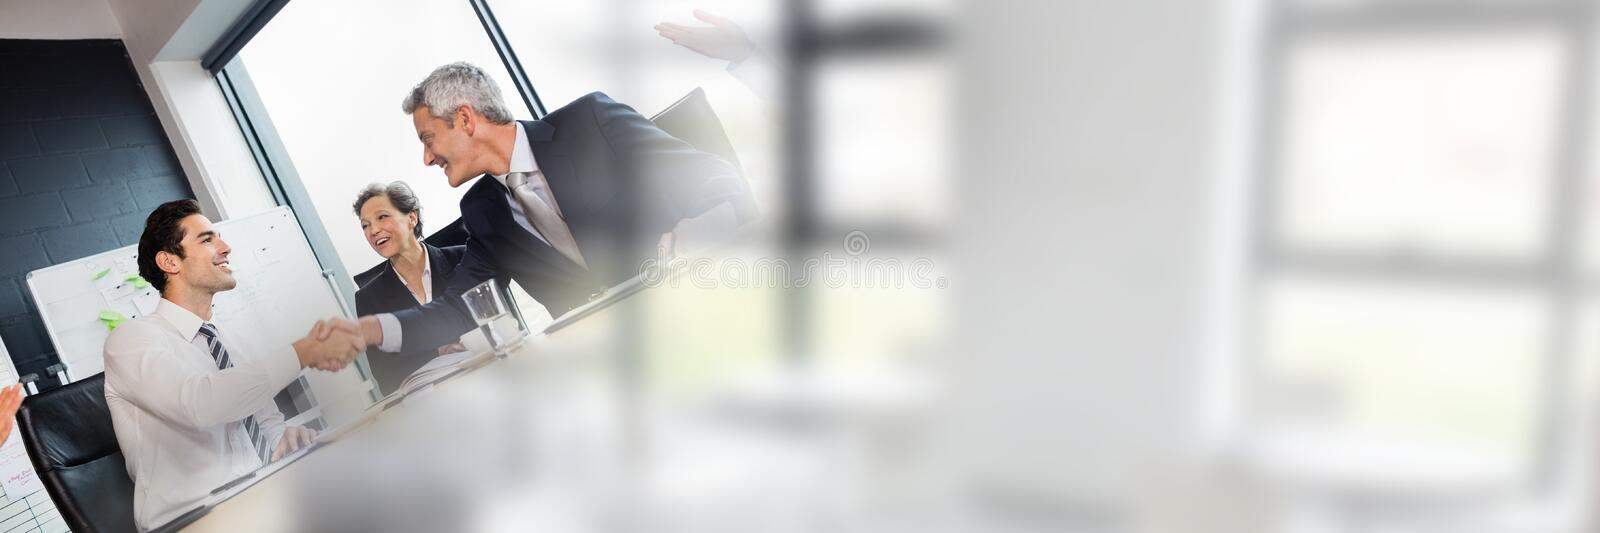 Business people having a meeting with windows transition effect stock images